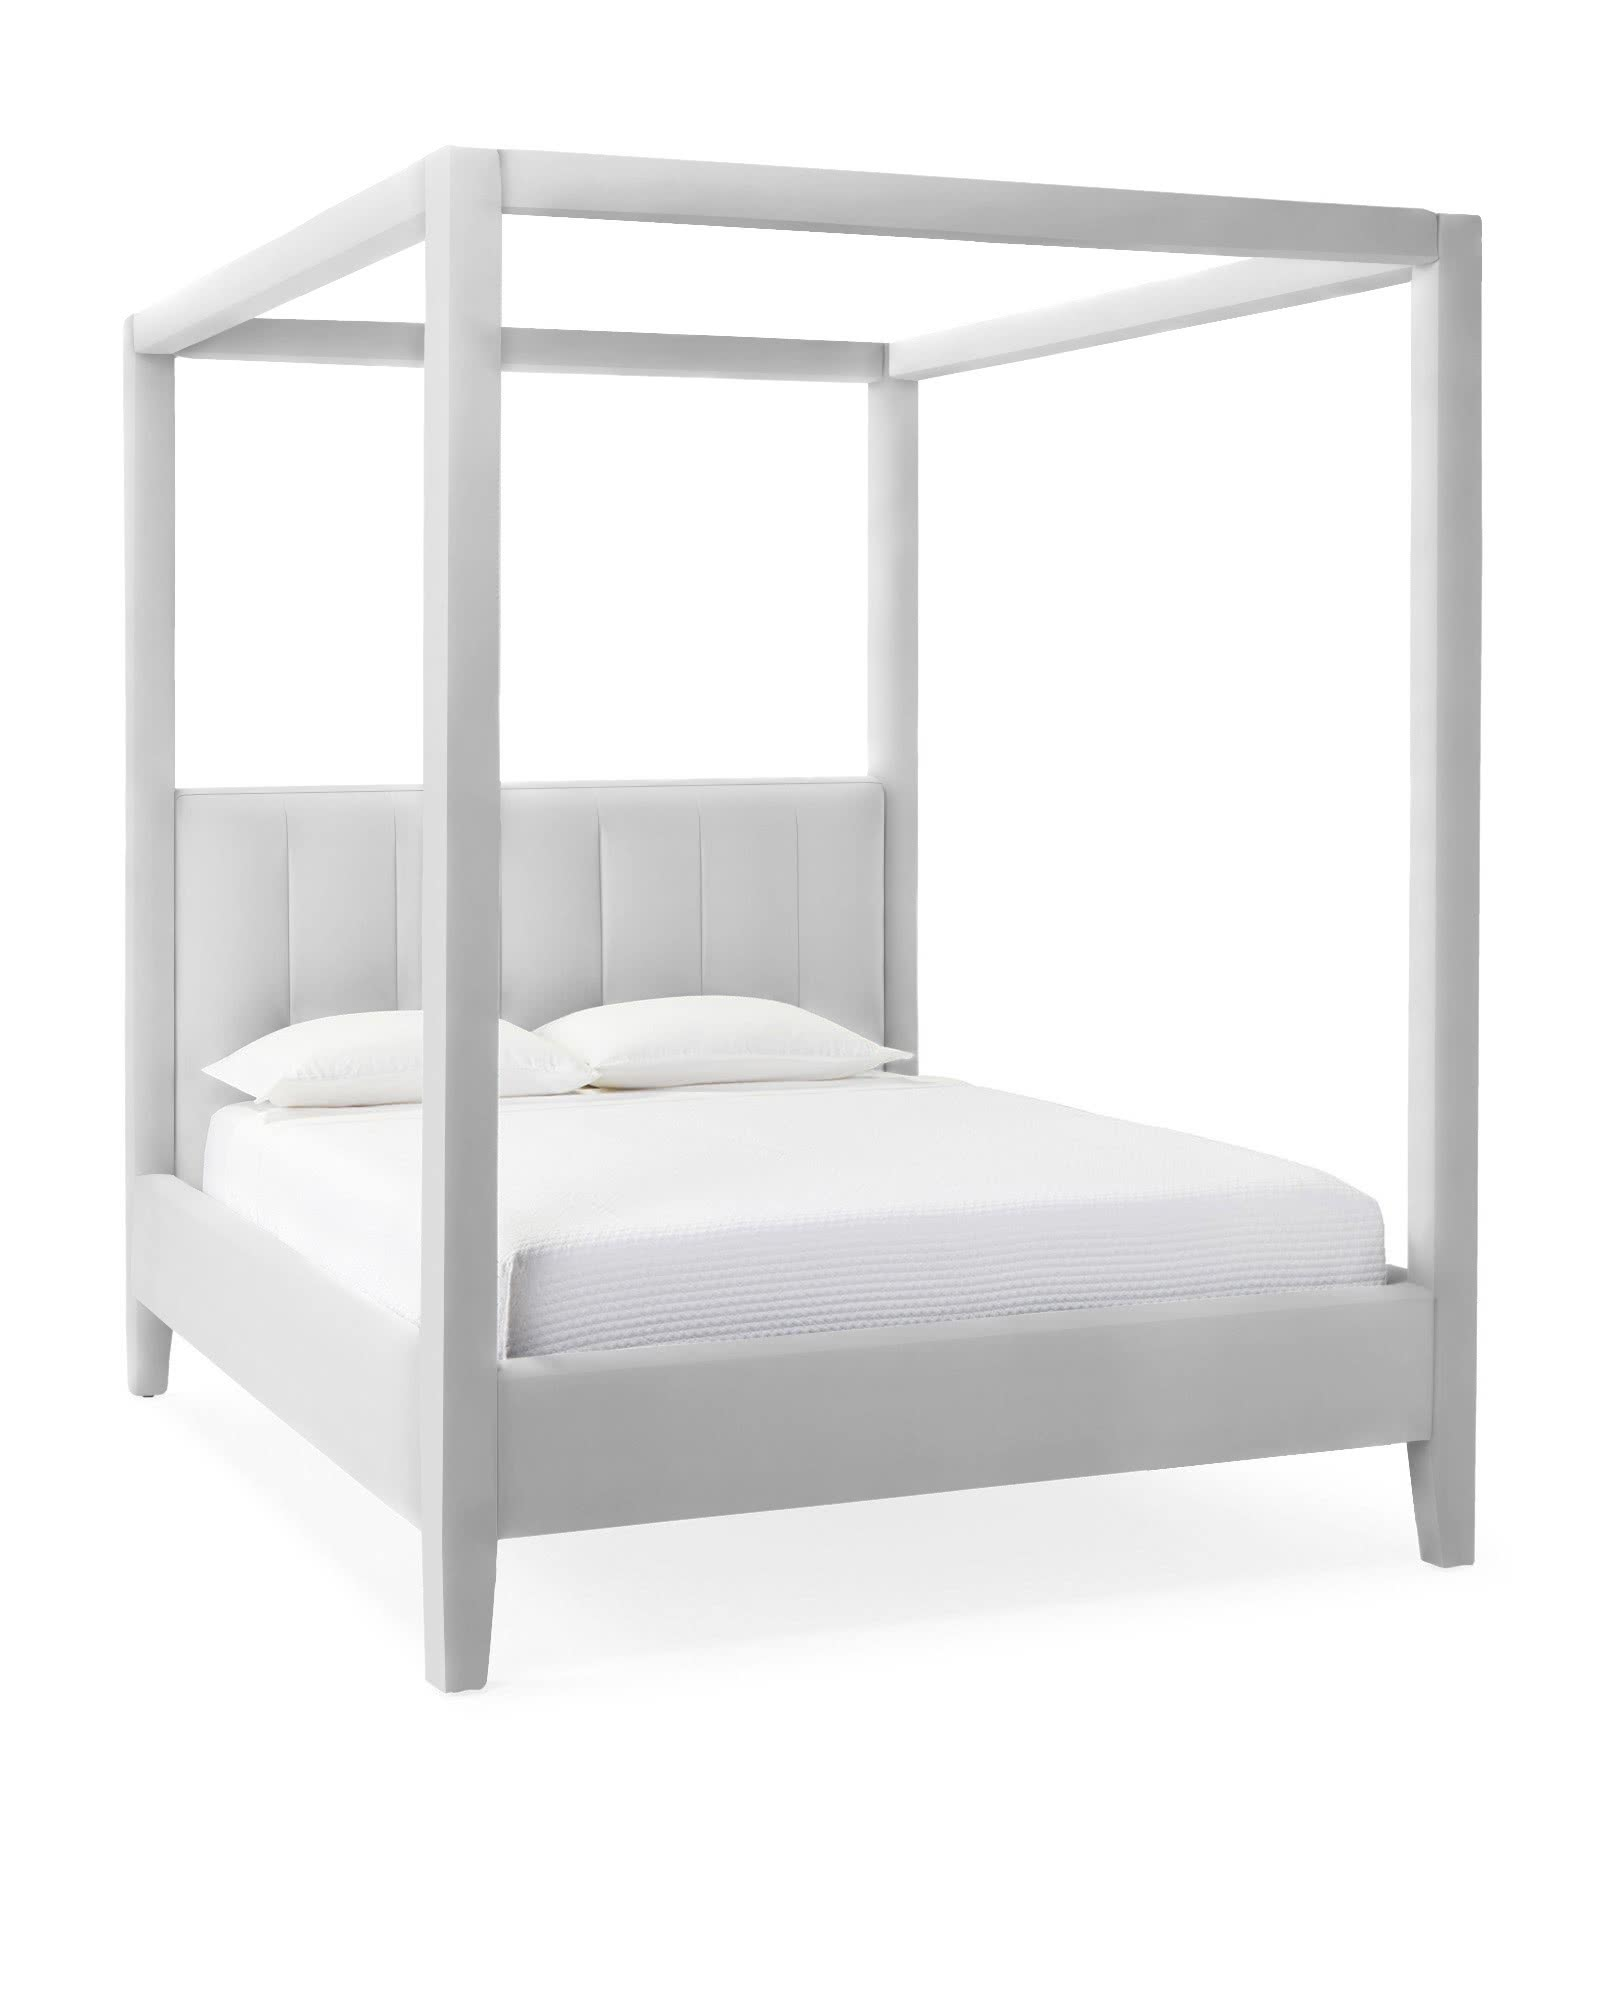 Franklin Four Poster Bed,